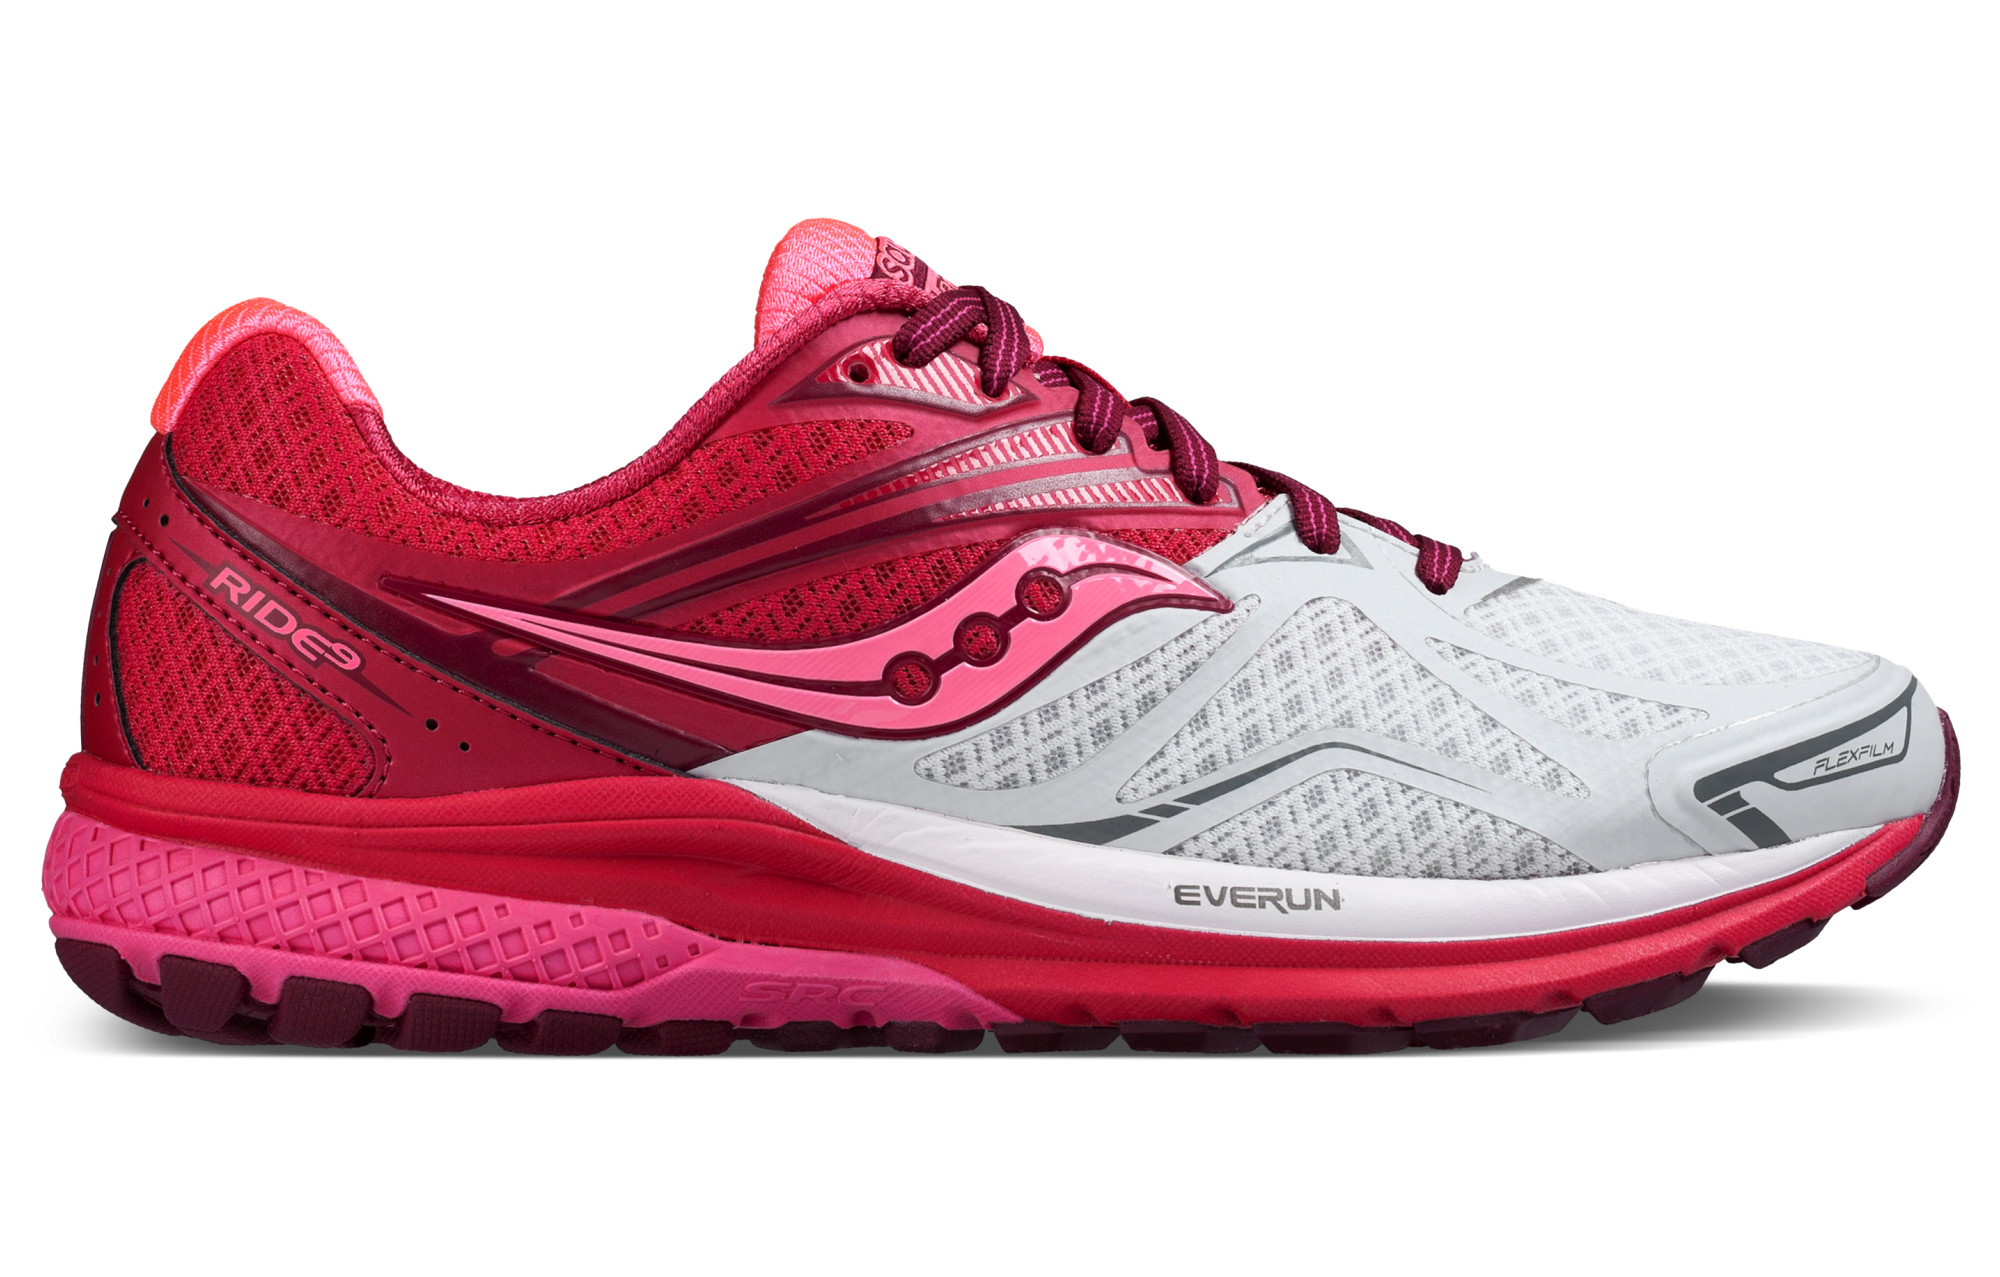 be04f43c973 Chaussures de Running Femme Saucony RIDE 9 Blanc   Rose